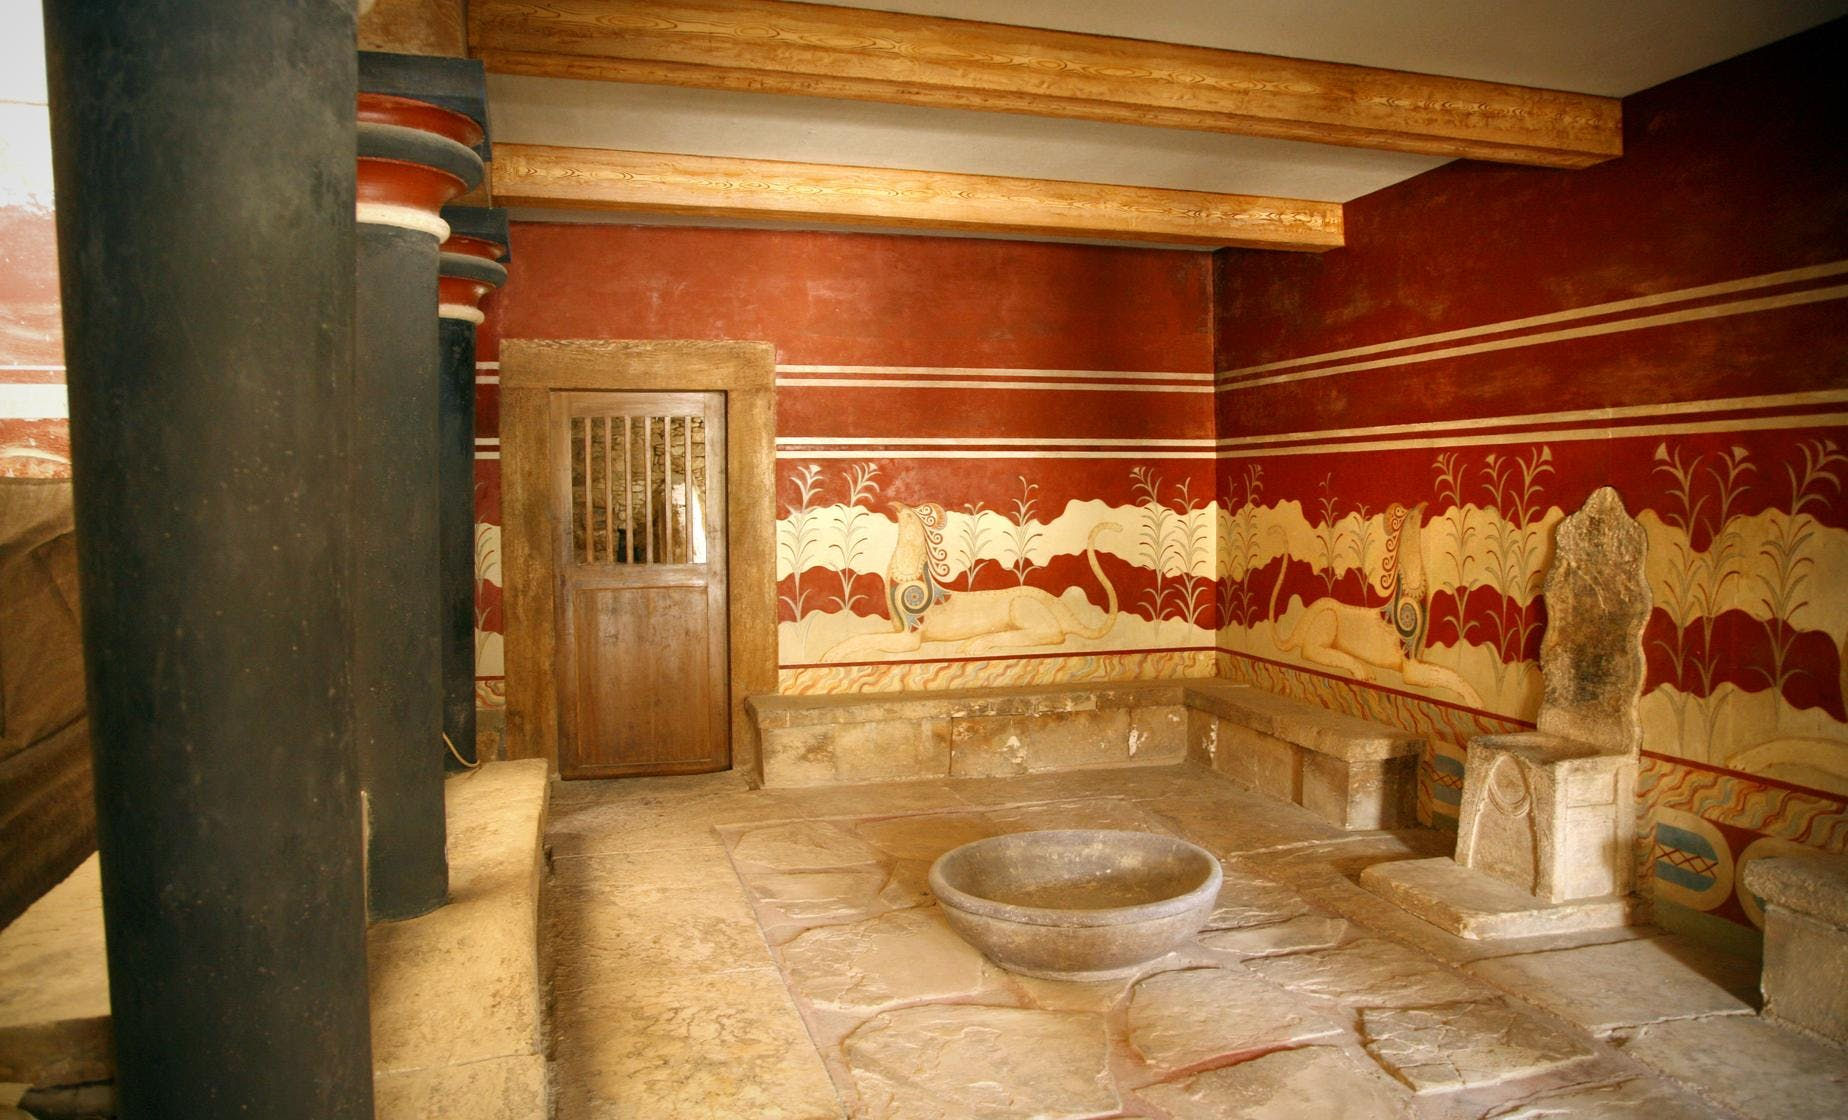 Private Palace of Knossos